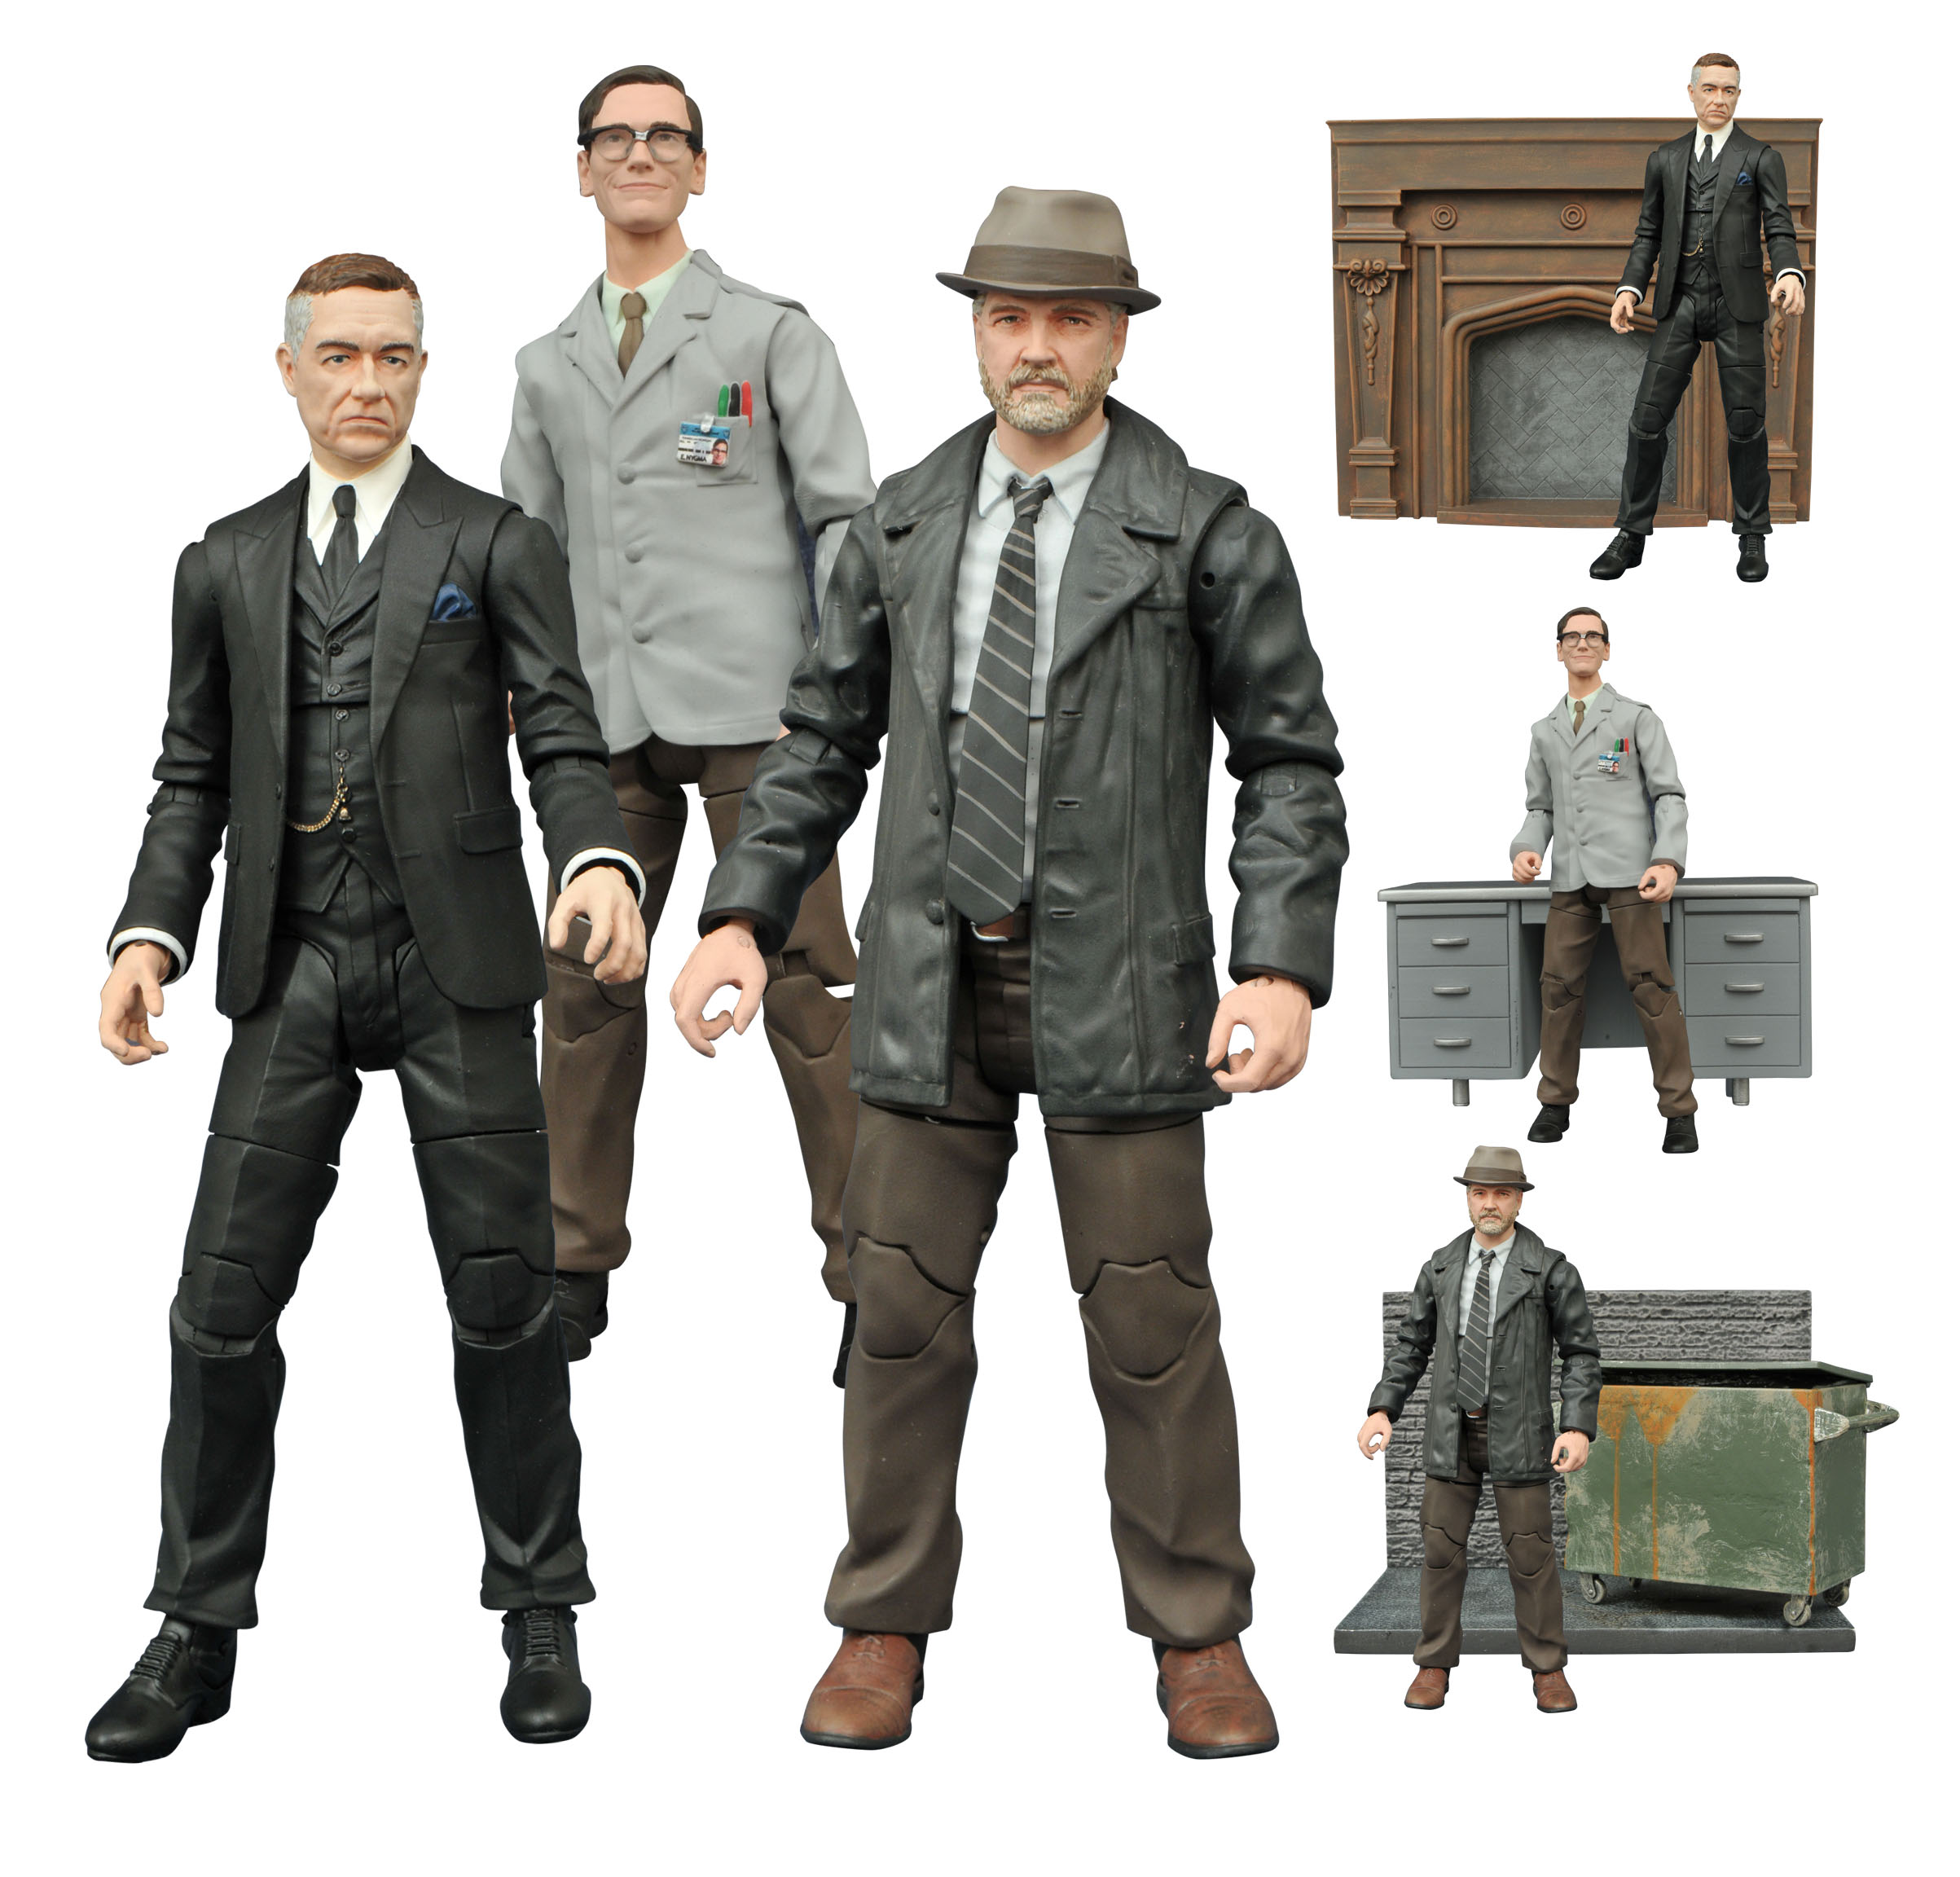 GothamActionFigures